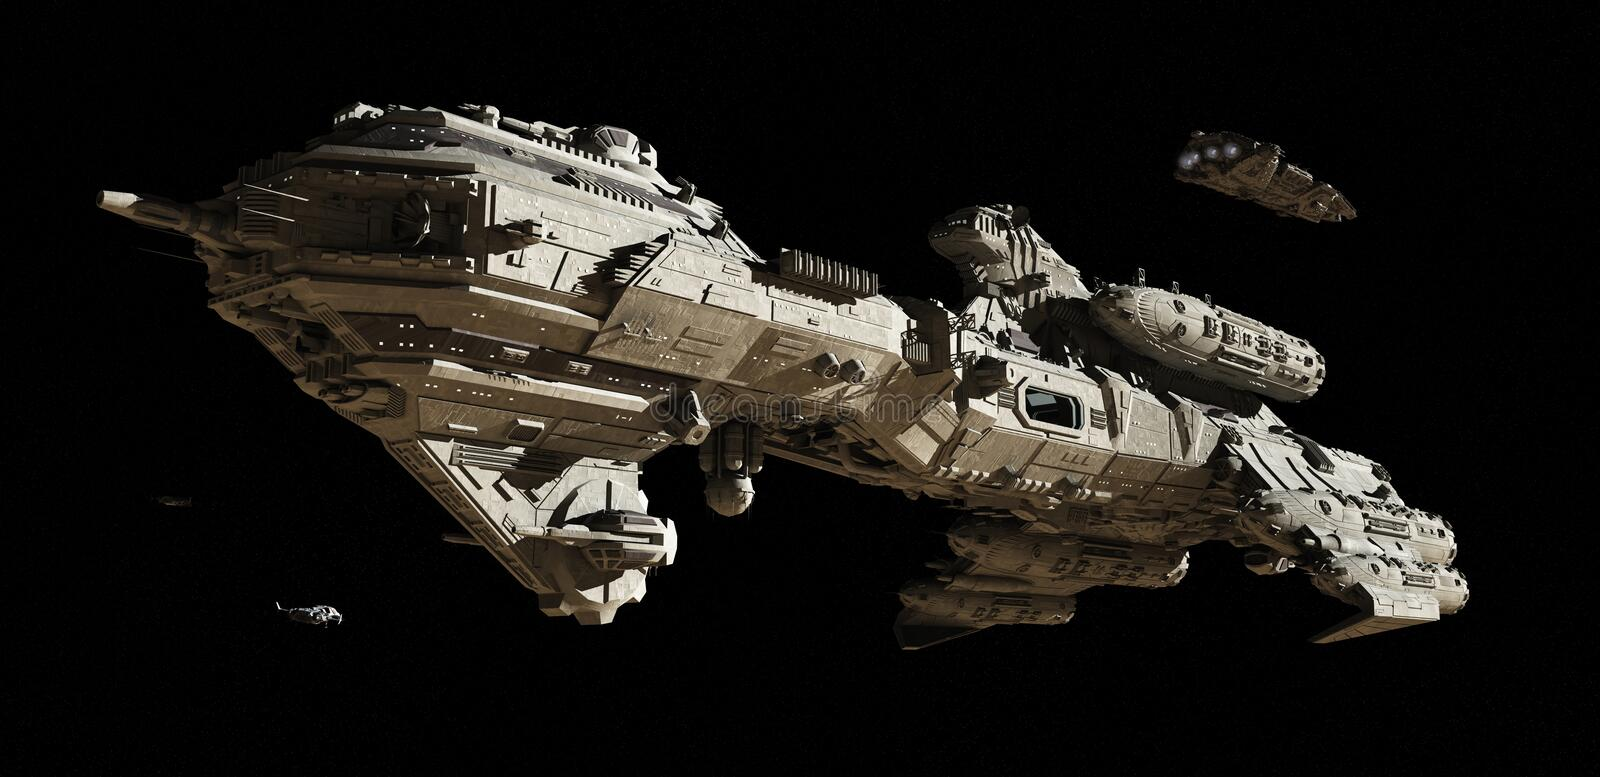 Interstellar Futuristic Escort Frigate. Science fiction scene of a futuristic interstellar escort frigate and small scout ships travelling through deep space, 3d stock illustration